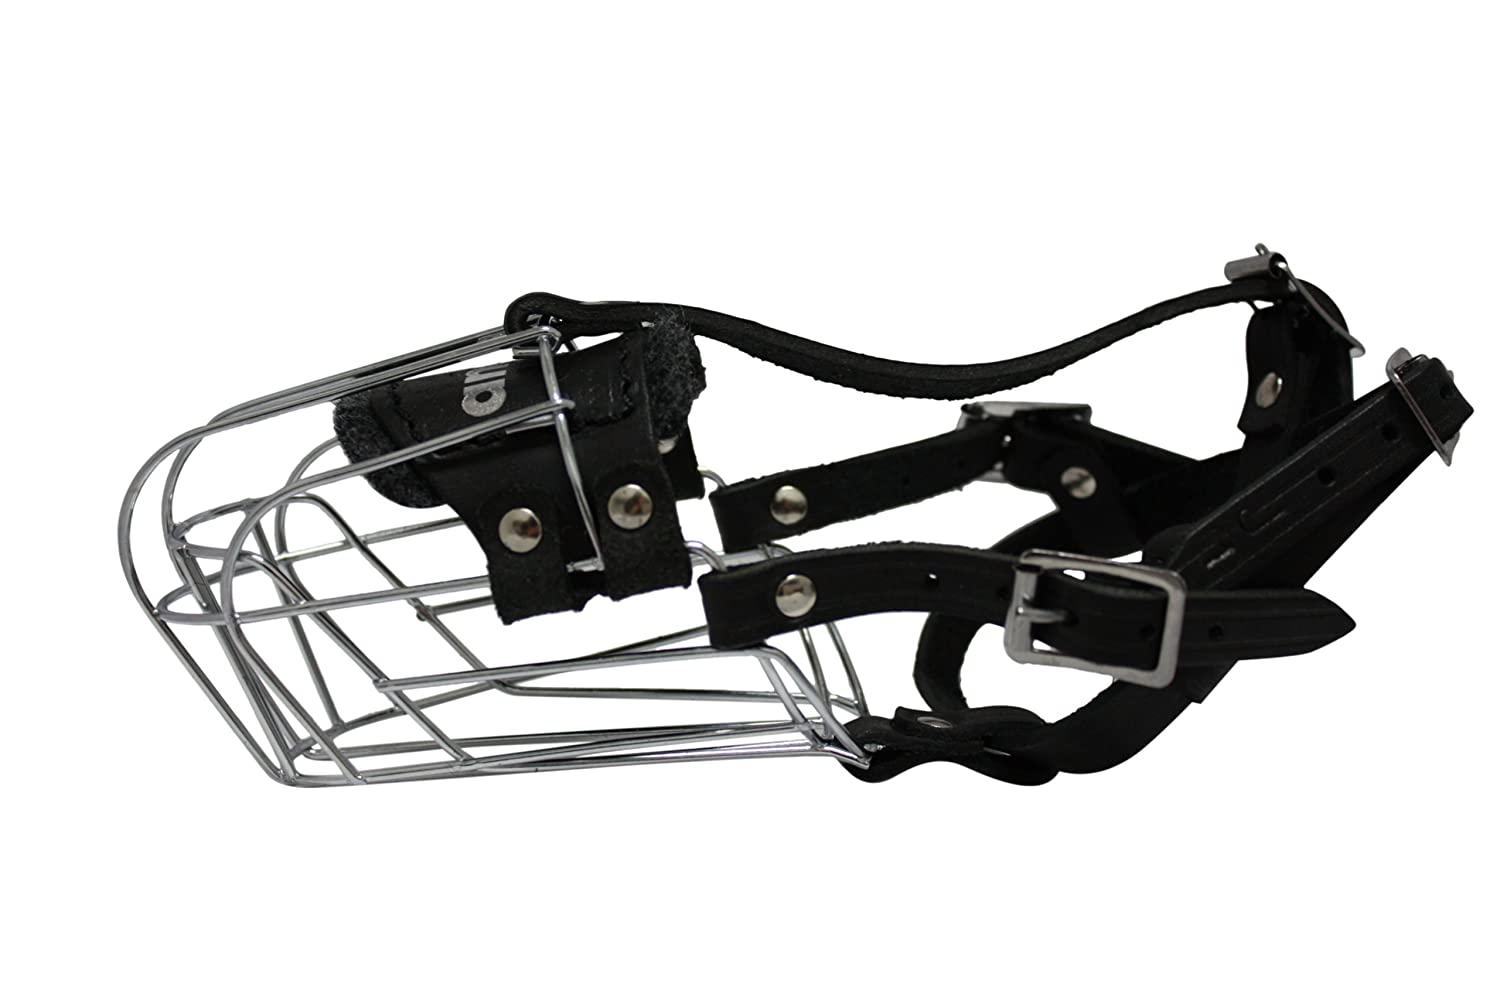 Angel Pet Supplies Inc. Wire Cage & Leather Muzzle (Miami). Size J1, Black. 8.25  circumference, 3.5  length. Best fits small dogs with longer snouts like  Dachshunds